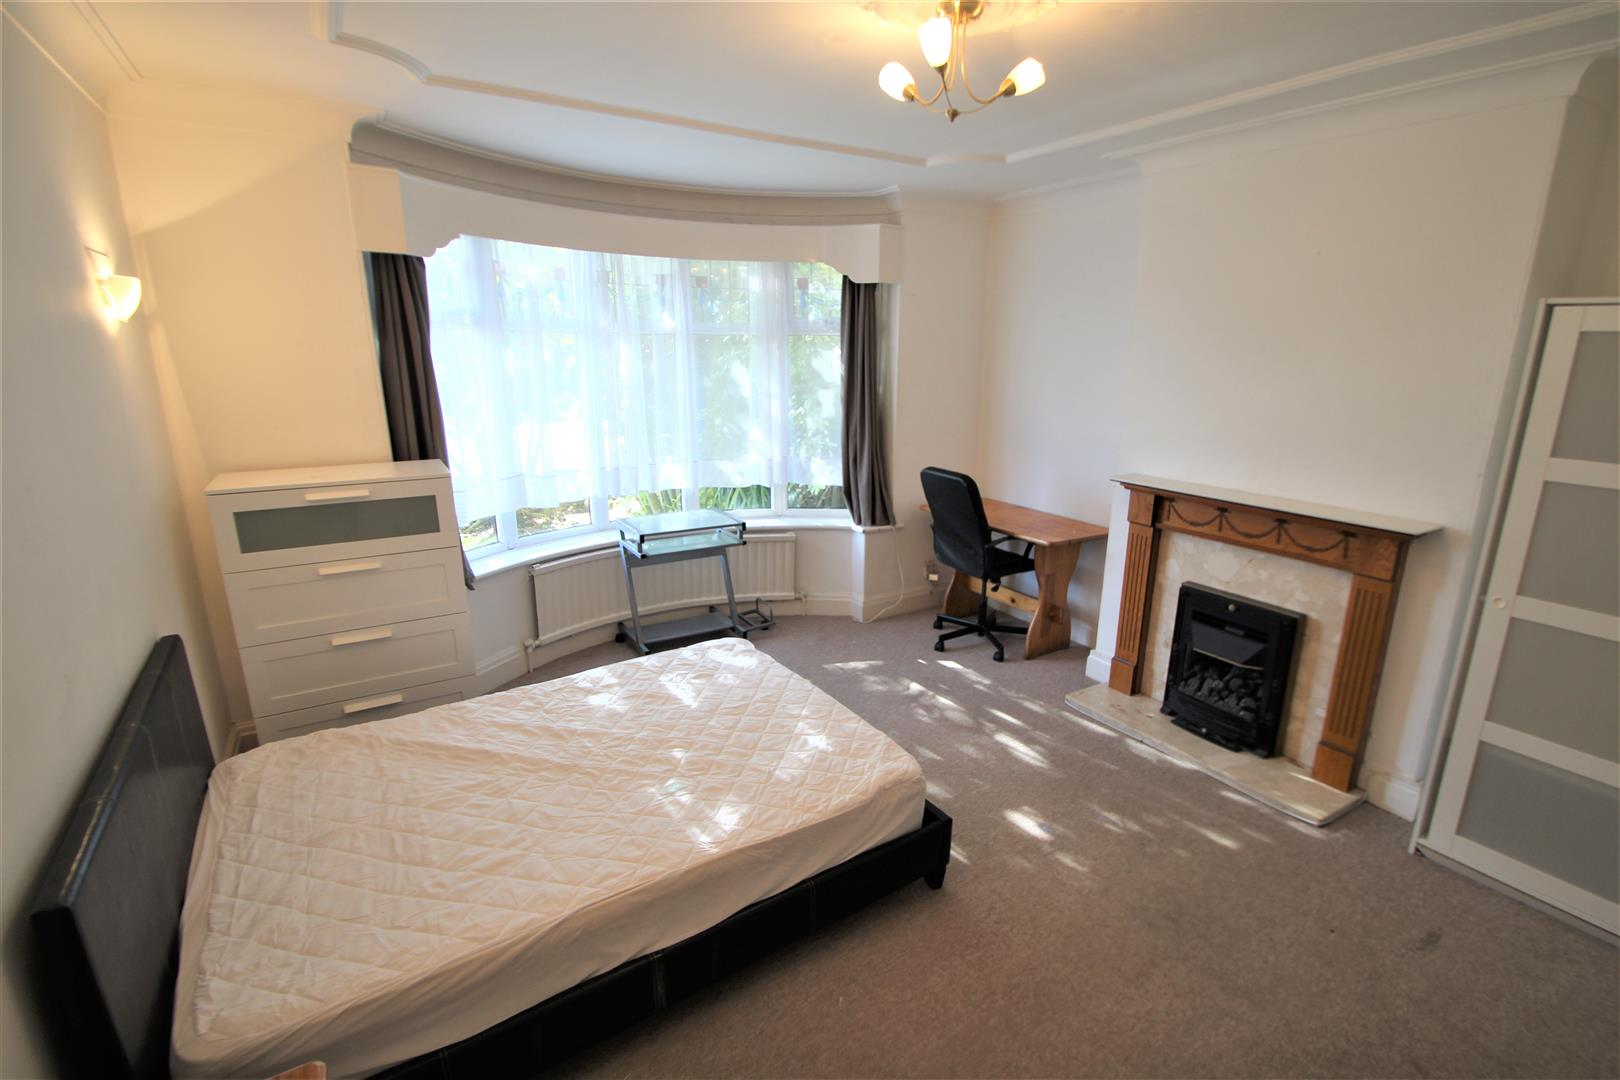 Room 1, St Annes Road, LS6 Image